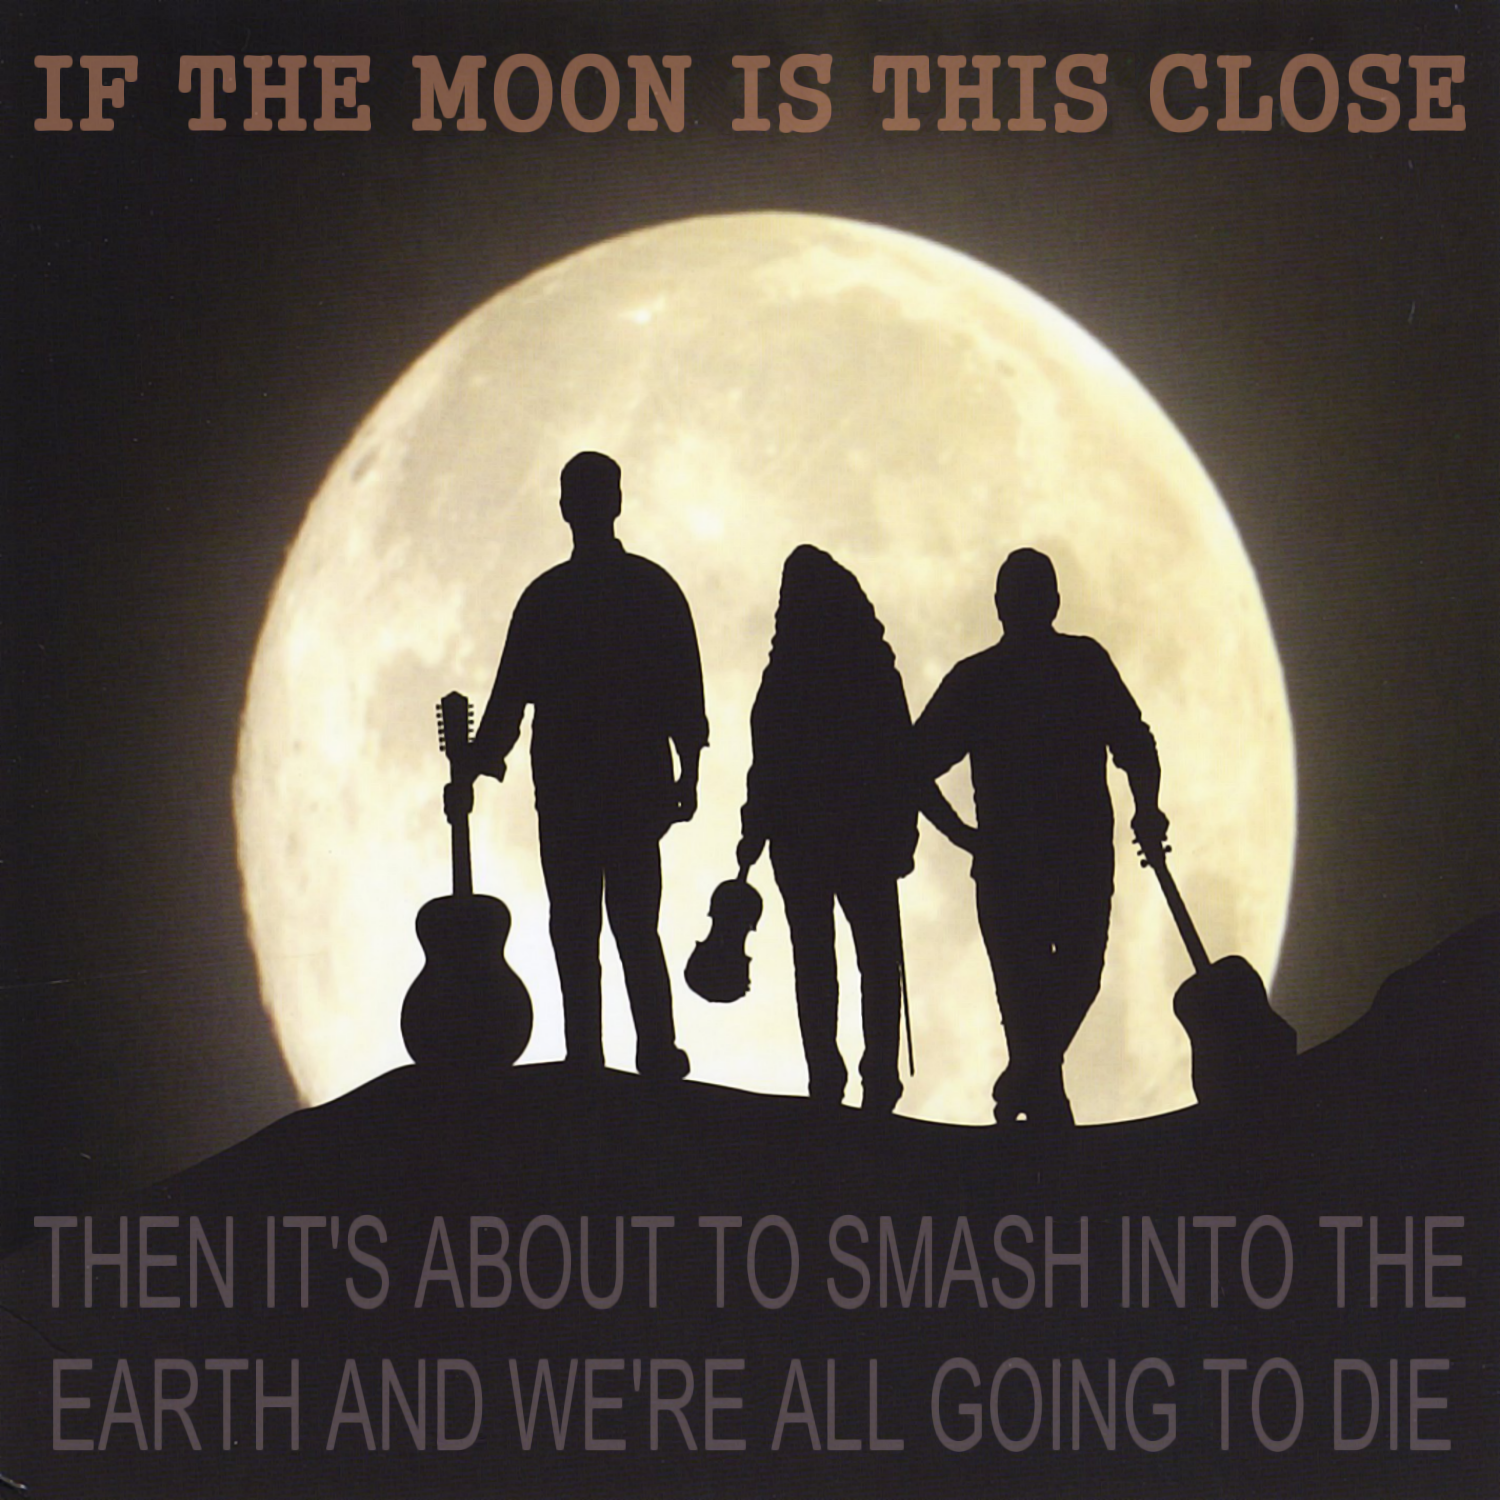 Album cover parody of Full Moon by Jericho Ditch